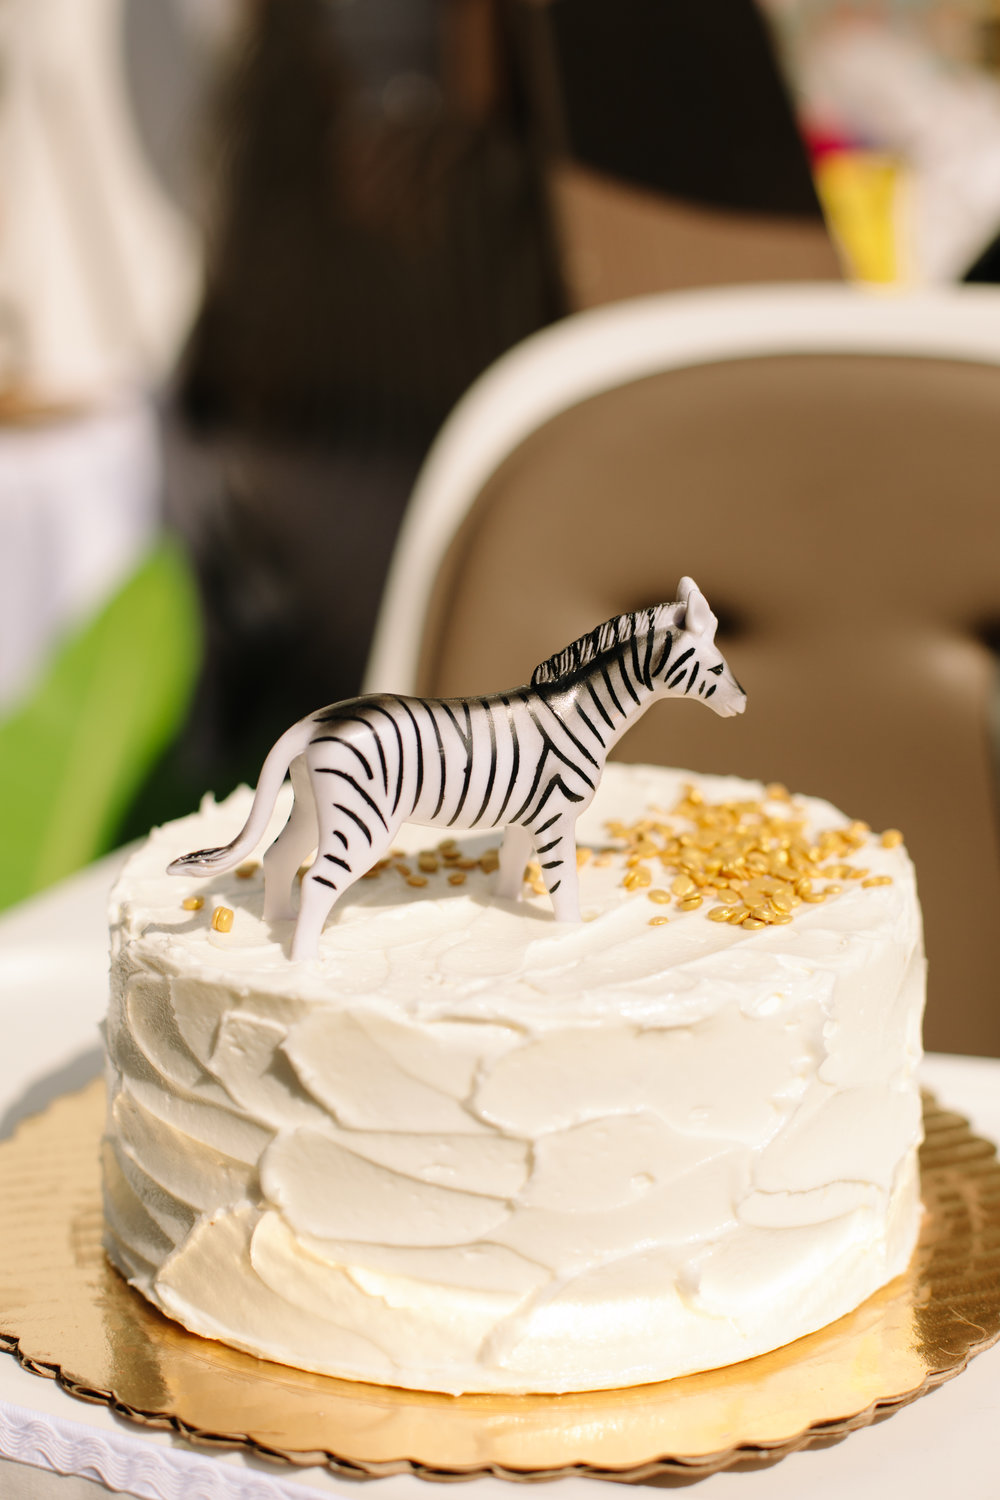 AngelaDatreEvents_JulianFirstBirthday_090118-160.jpg